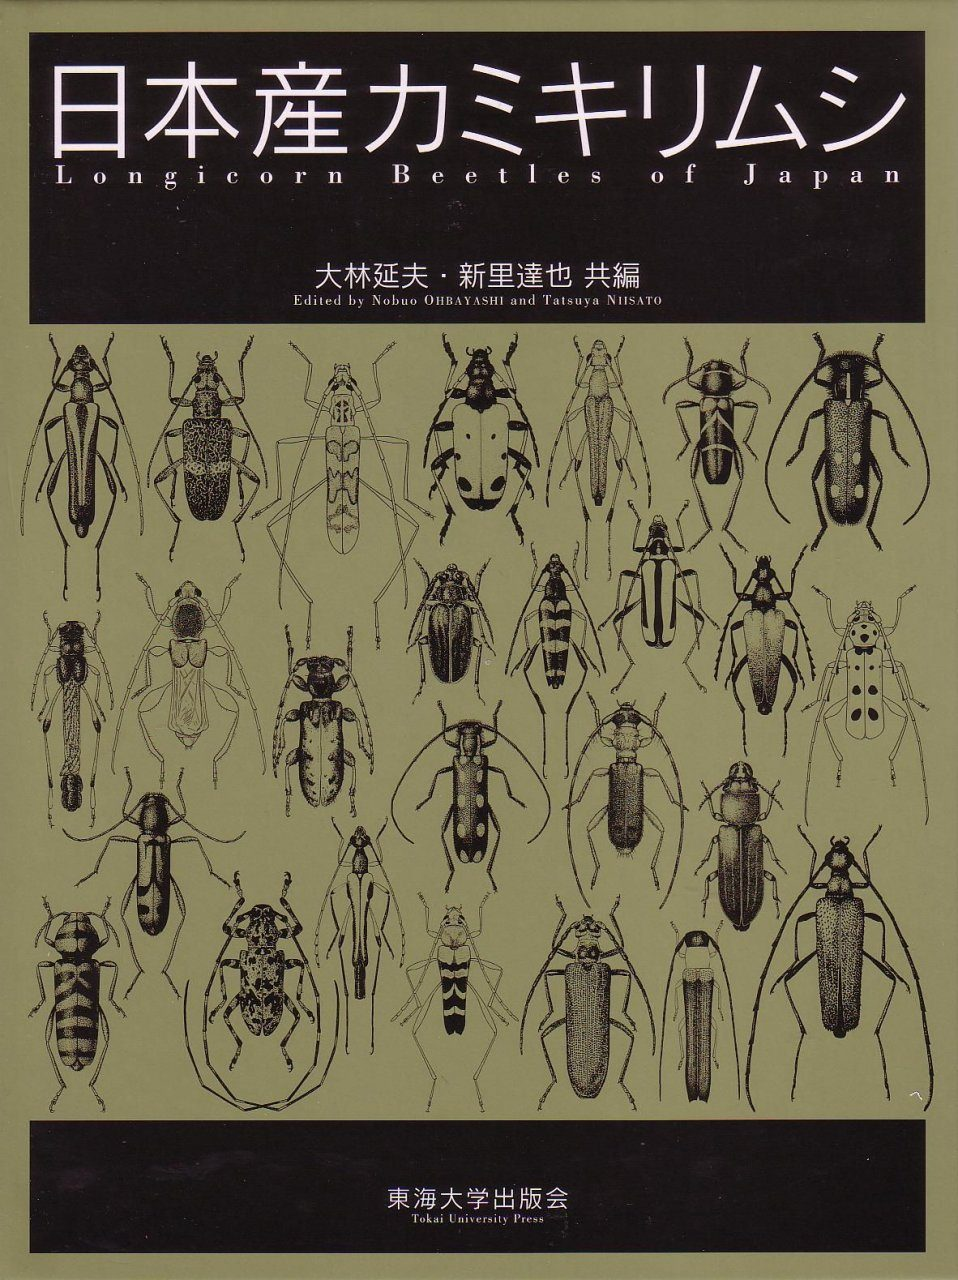 Longicorn Beetles of Japan [Japanese]